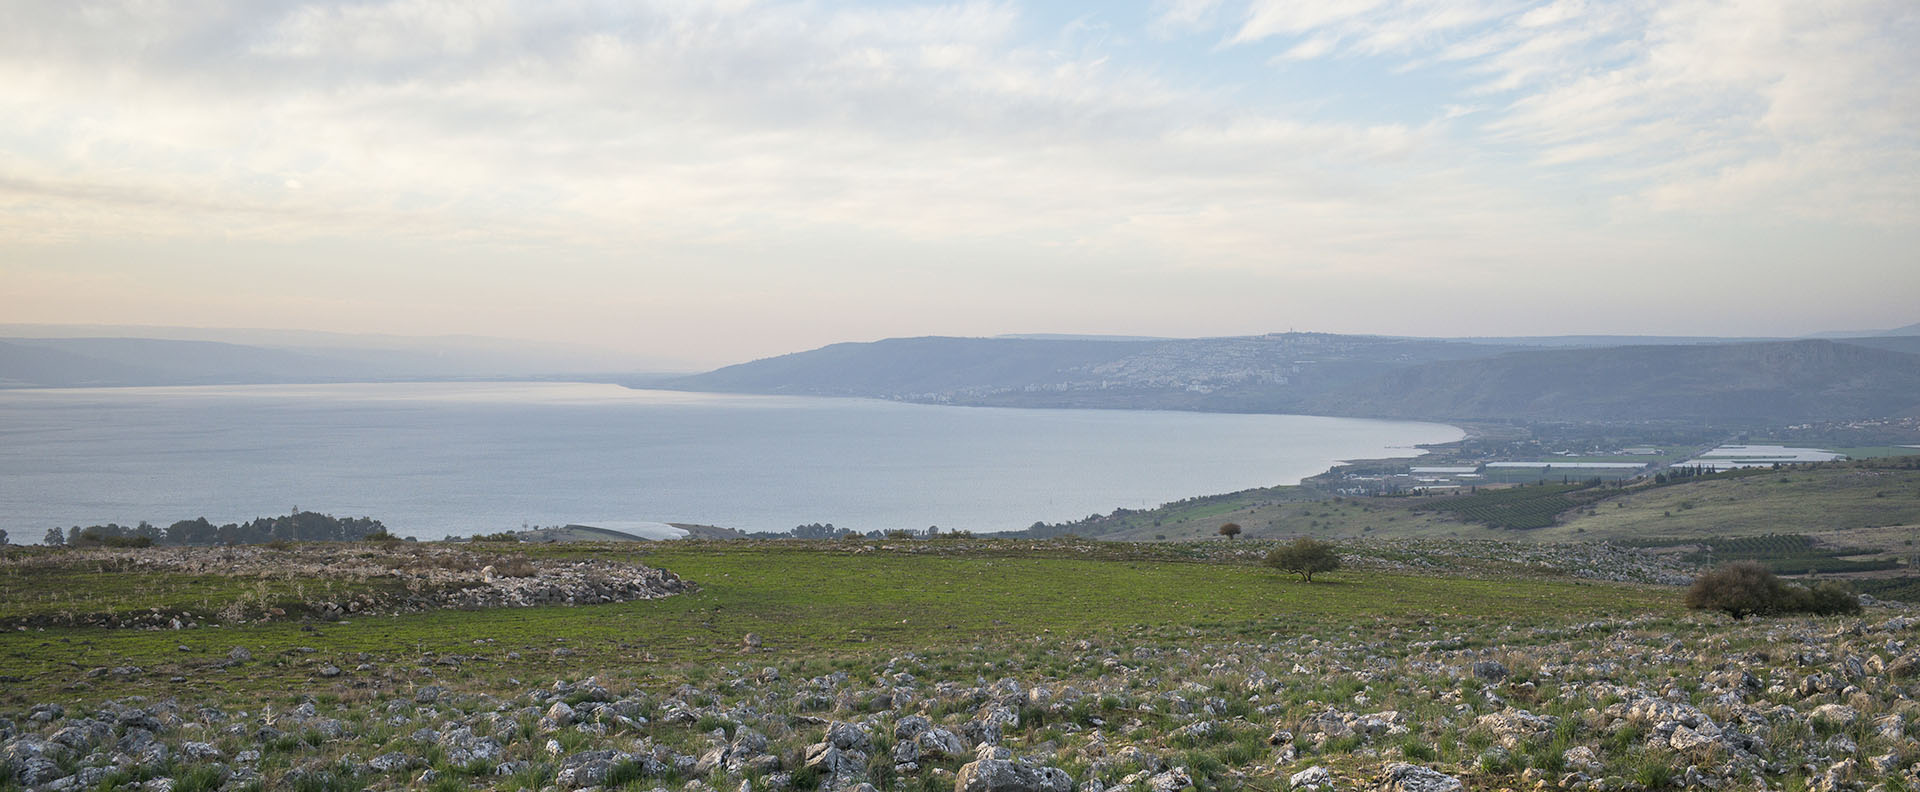 6 Best Churches in the Galilee